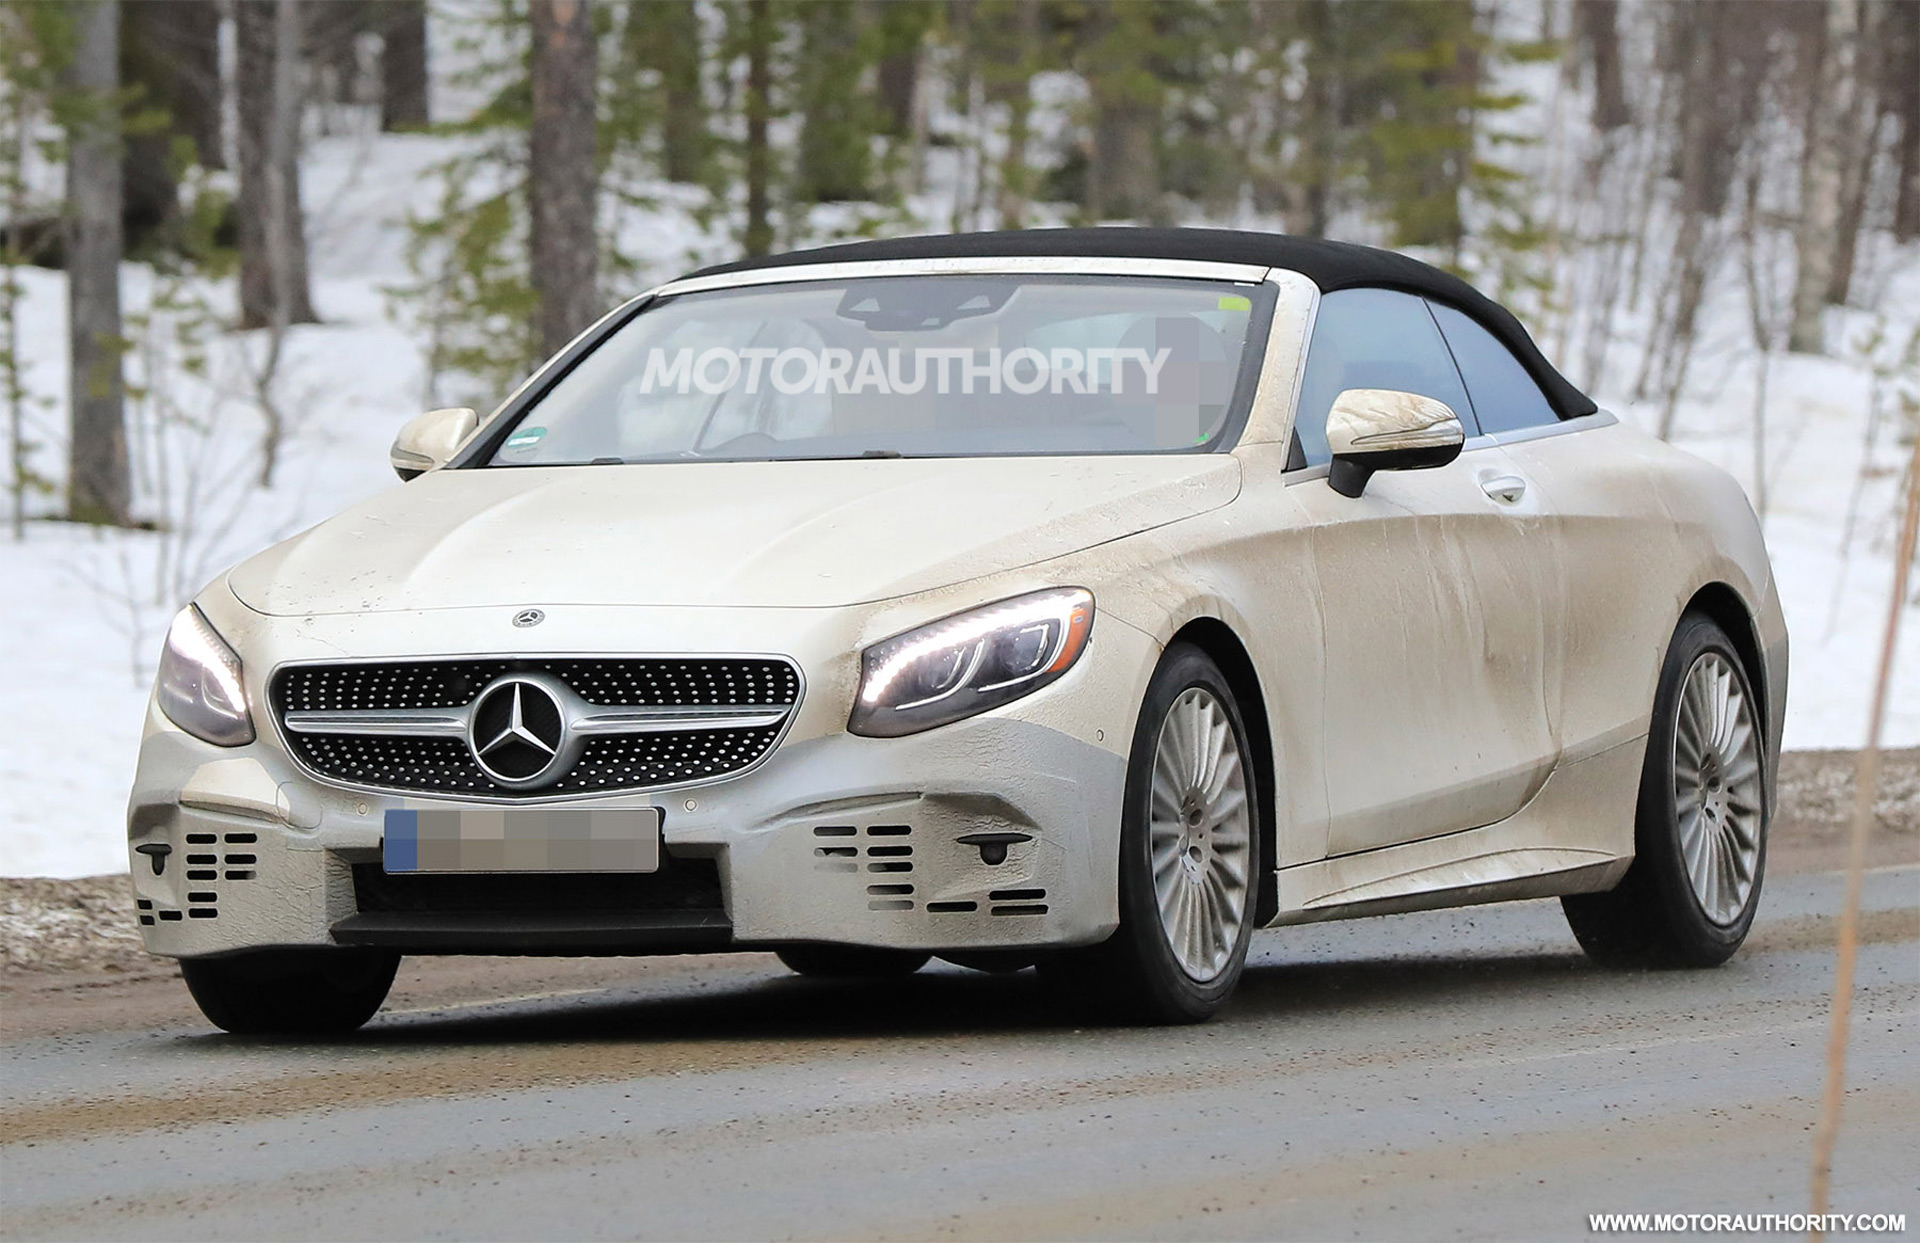 2019 benz s550 2019 Mercedes Benz S Class Cabriolet spy shots 2019 benz s550